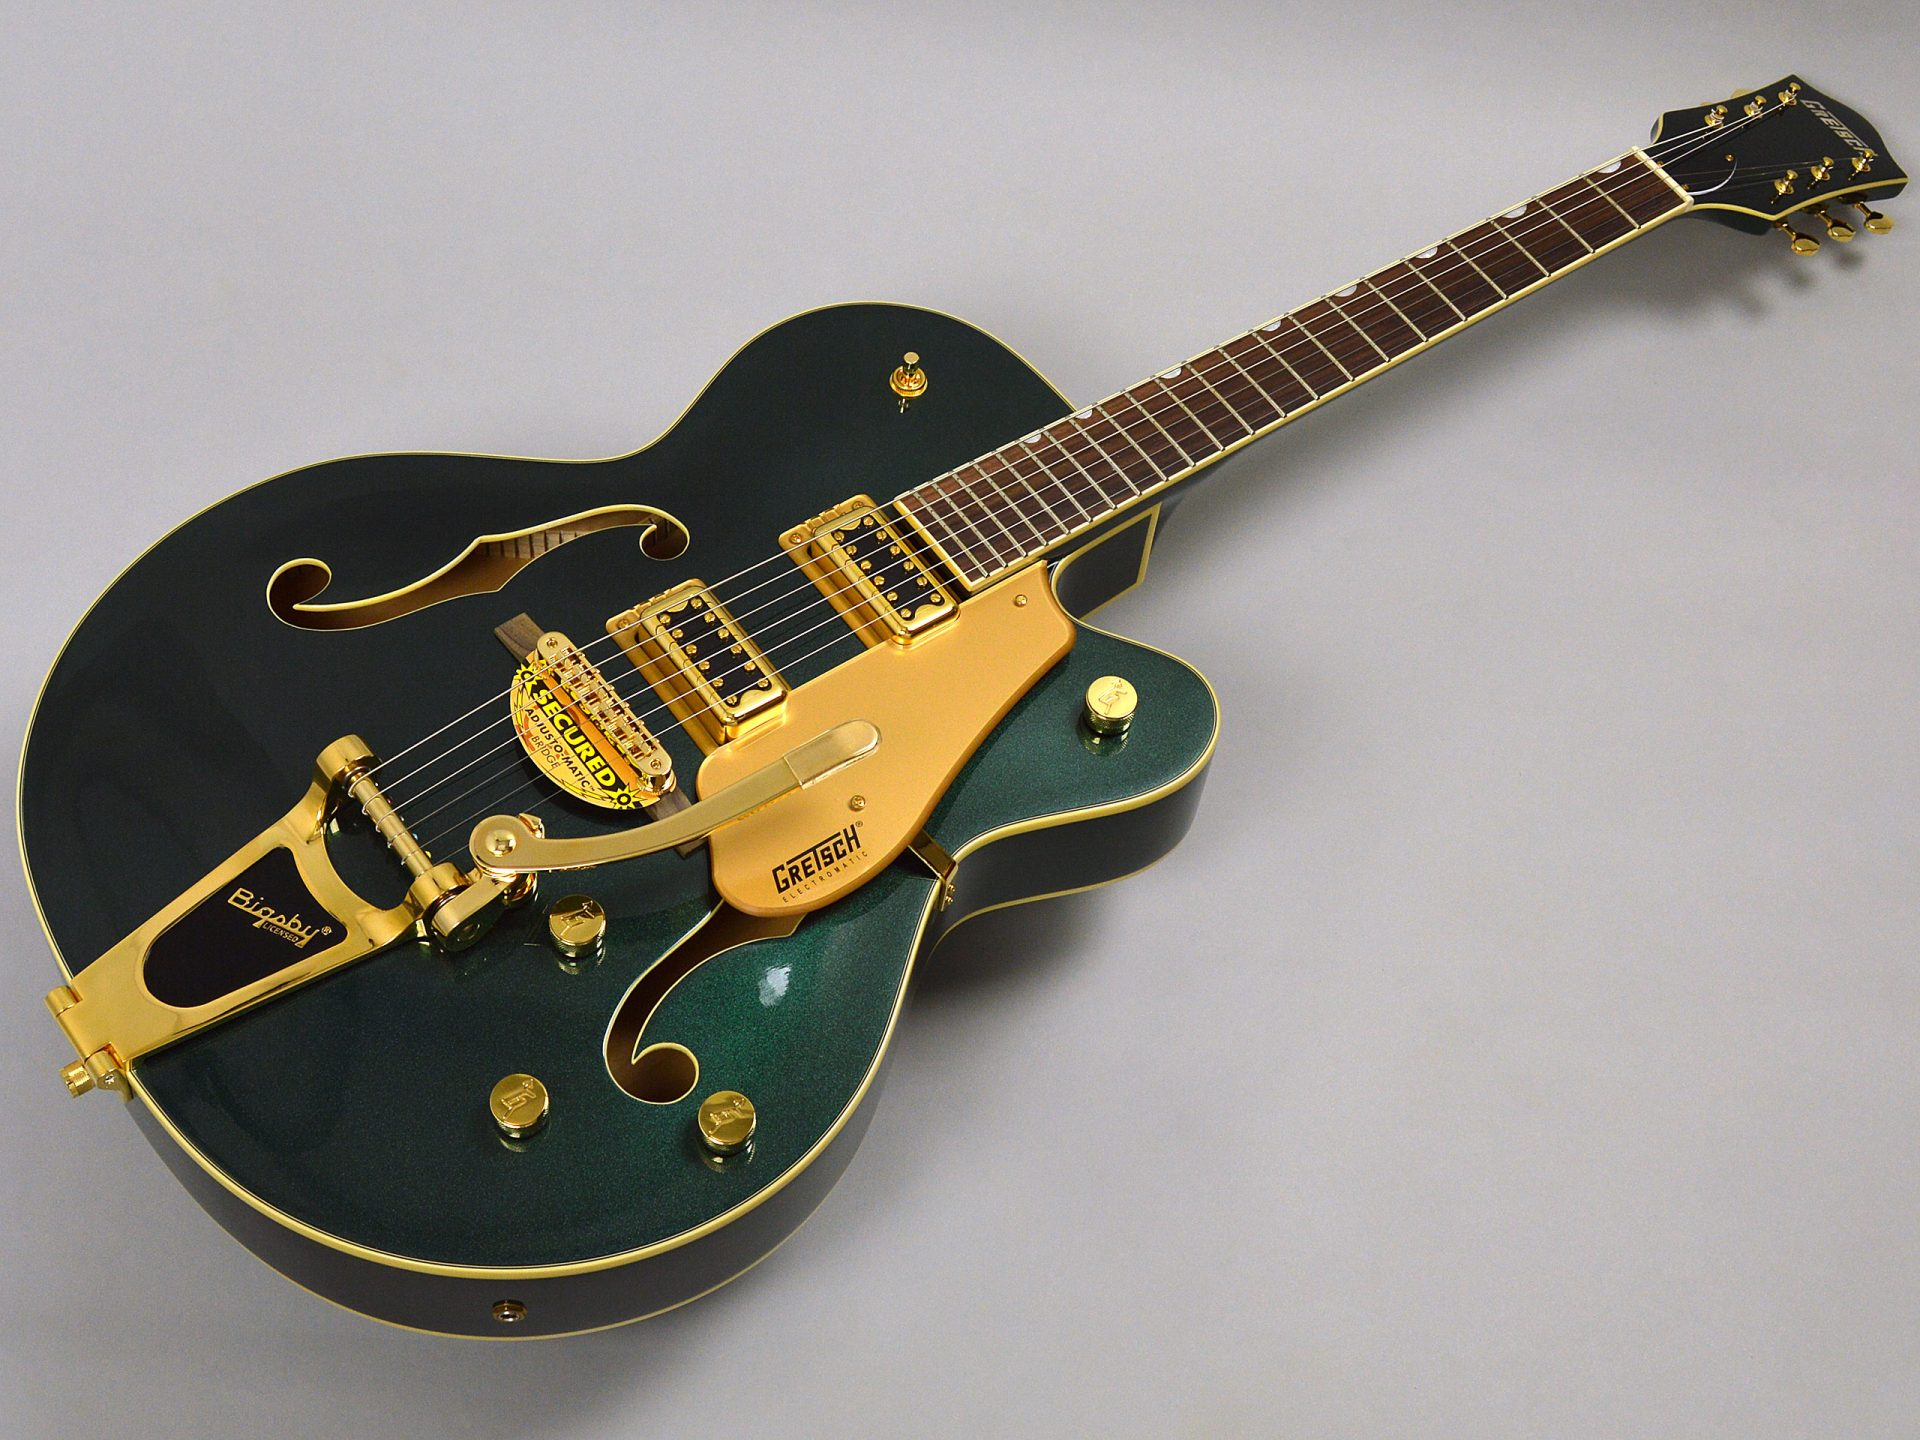 GRETSCH G5420TG Limited Edition Electromatic Hollow Body Single-Cut with Bigsbyトップ画像